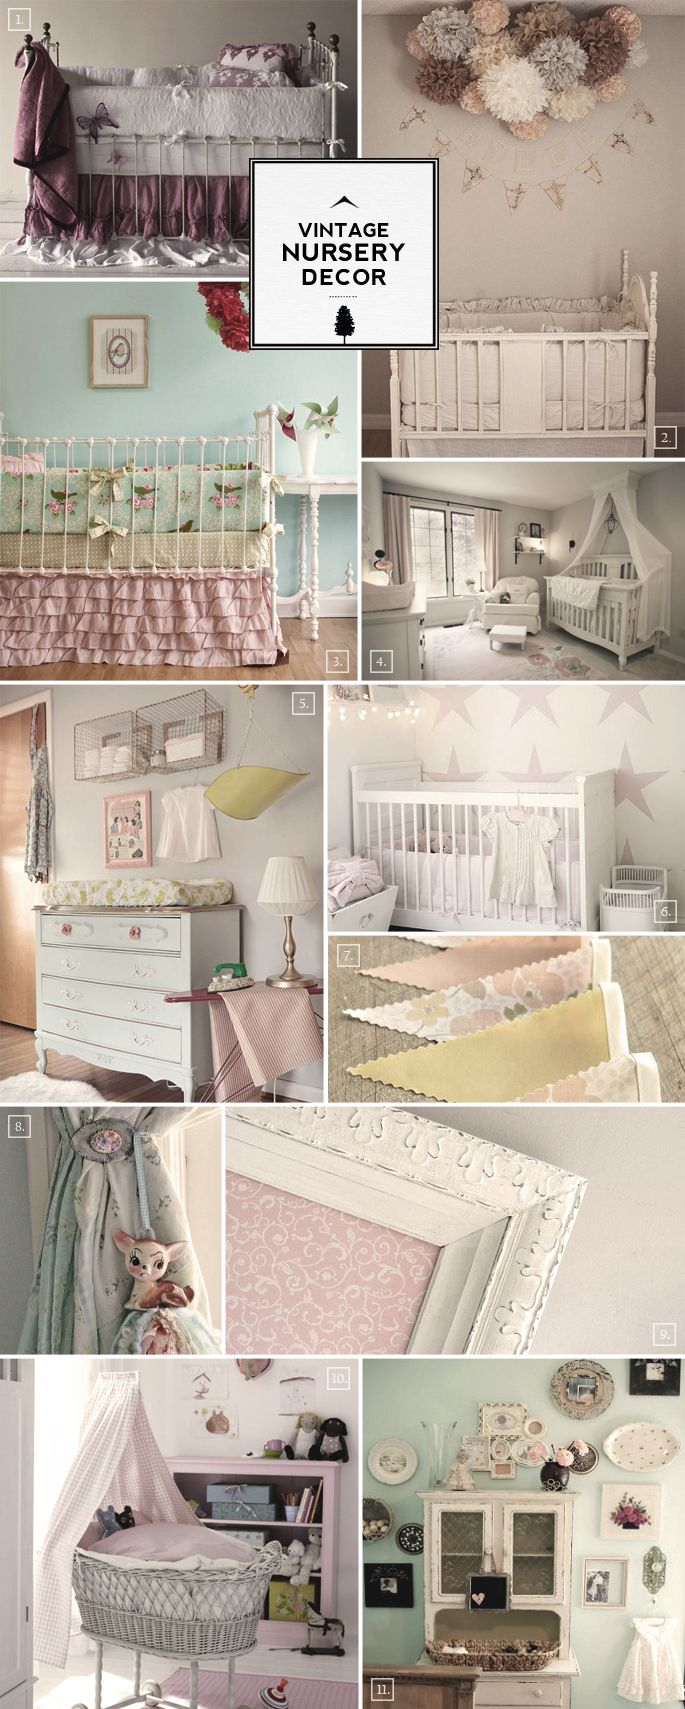 For The Baby: Vintage nursery decor ideas for boys and girls